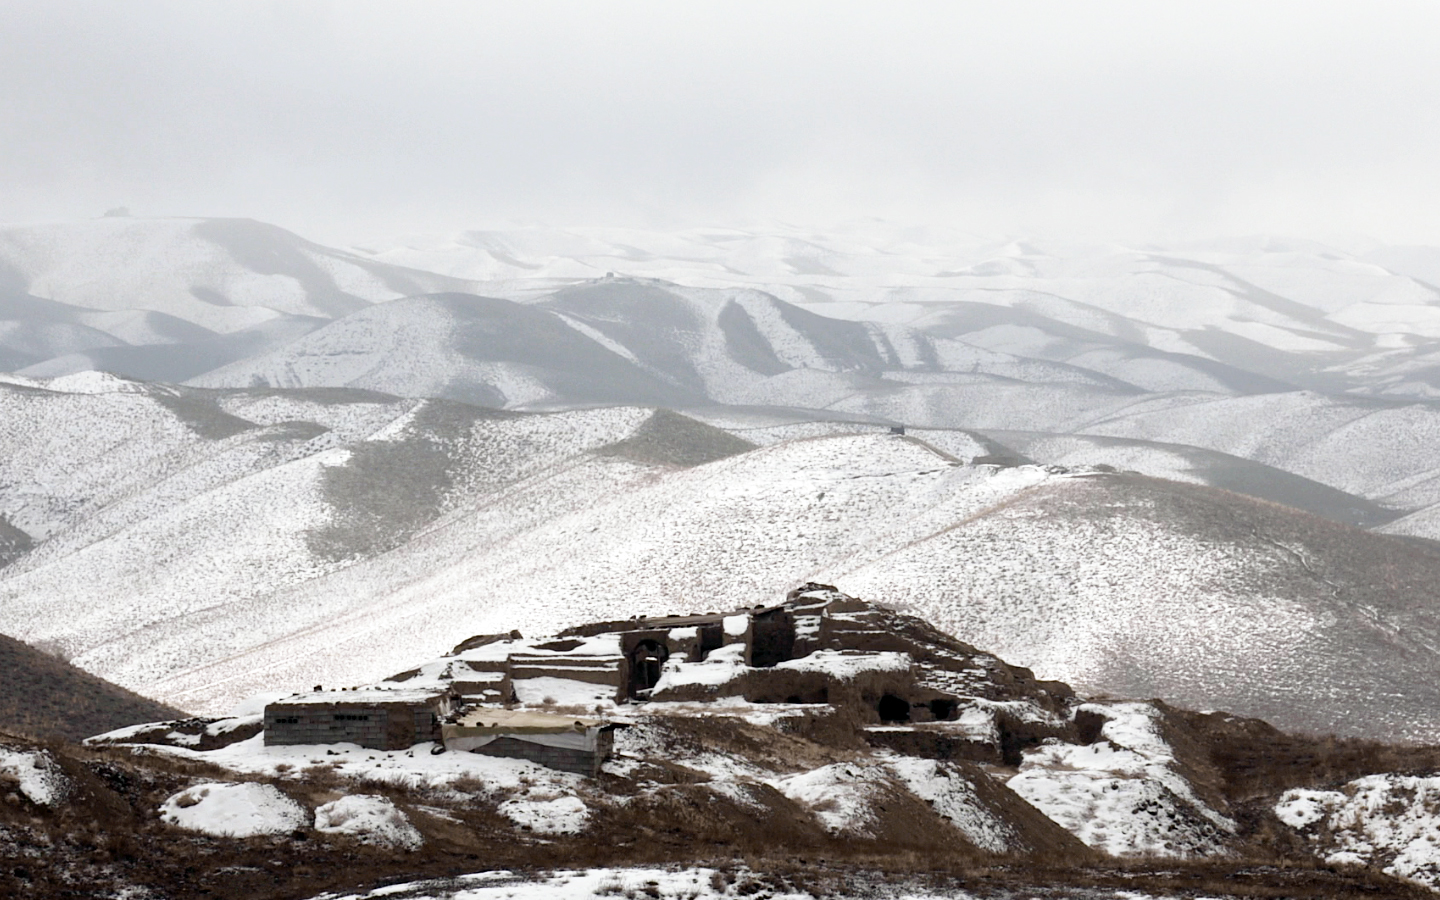 Mes Aynak, in the winter.